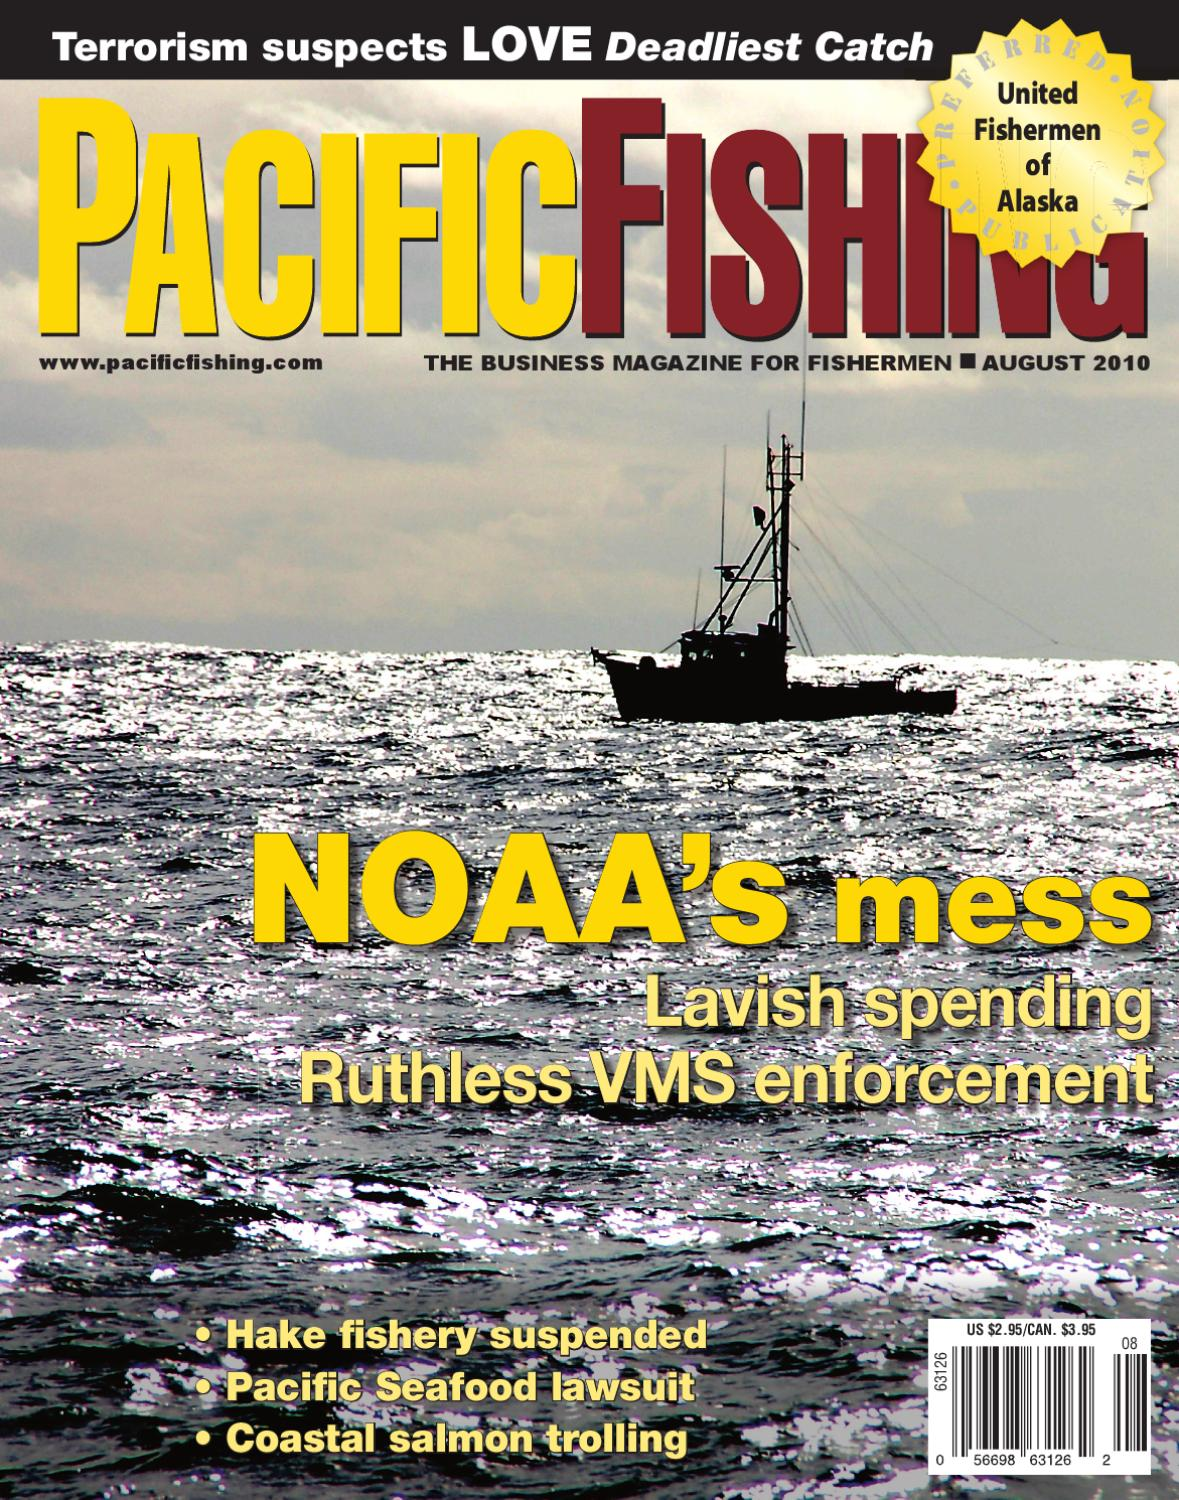 Issuu pacific fishing august 2010 by peter hurme for Pacific fishing magazine